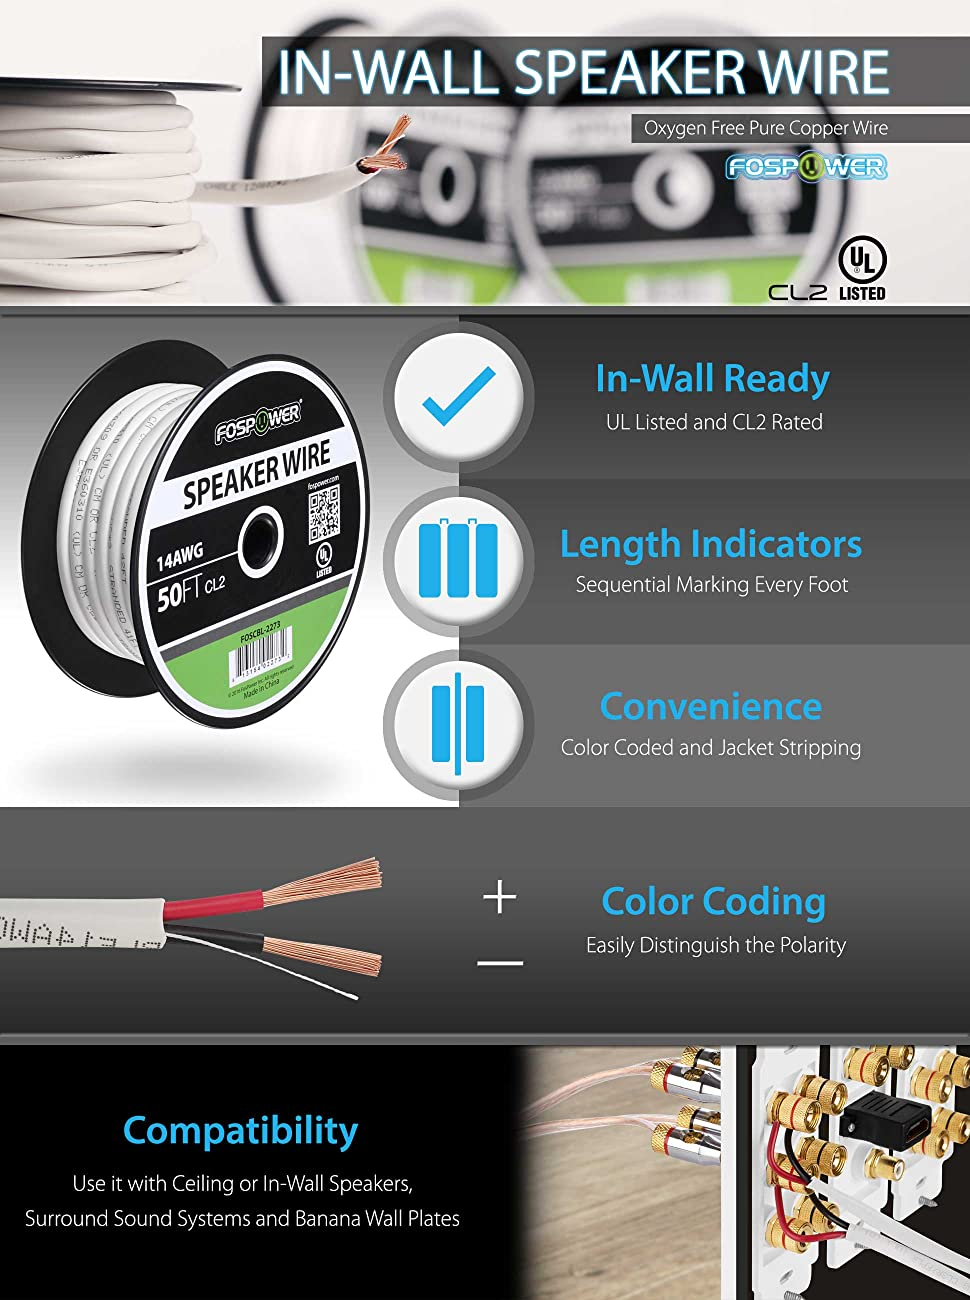 Fospower 14 Gauge Speaker Wire 250ft Cl2 Rated 14awg 2 Ceiling Speakers Wiring Fospowers Premium In Wall Is Used To Connect Power Amplifiers And Audio Receivers Home School Church Or Business